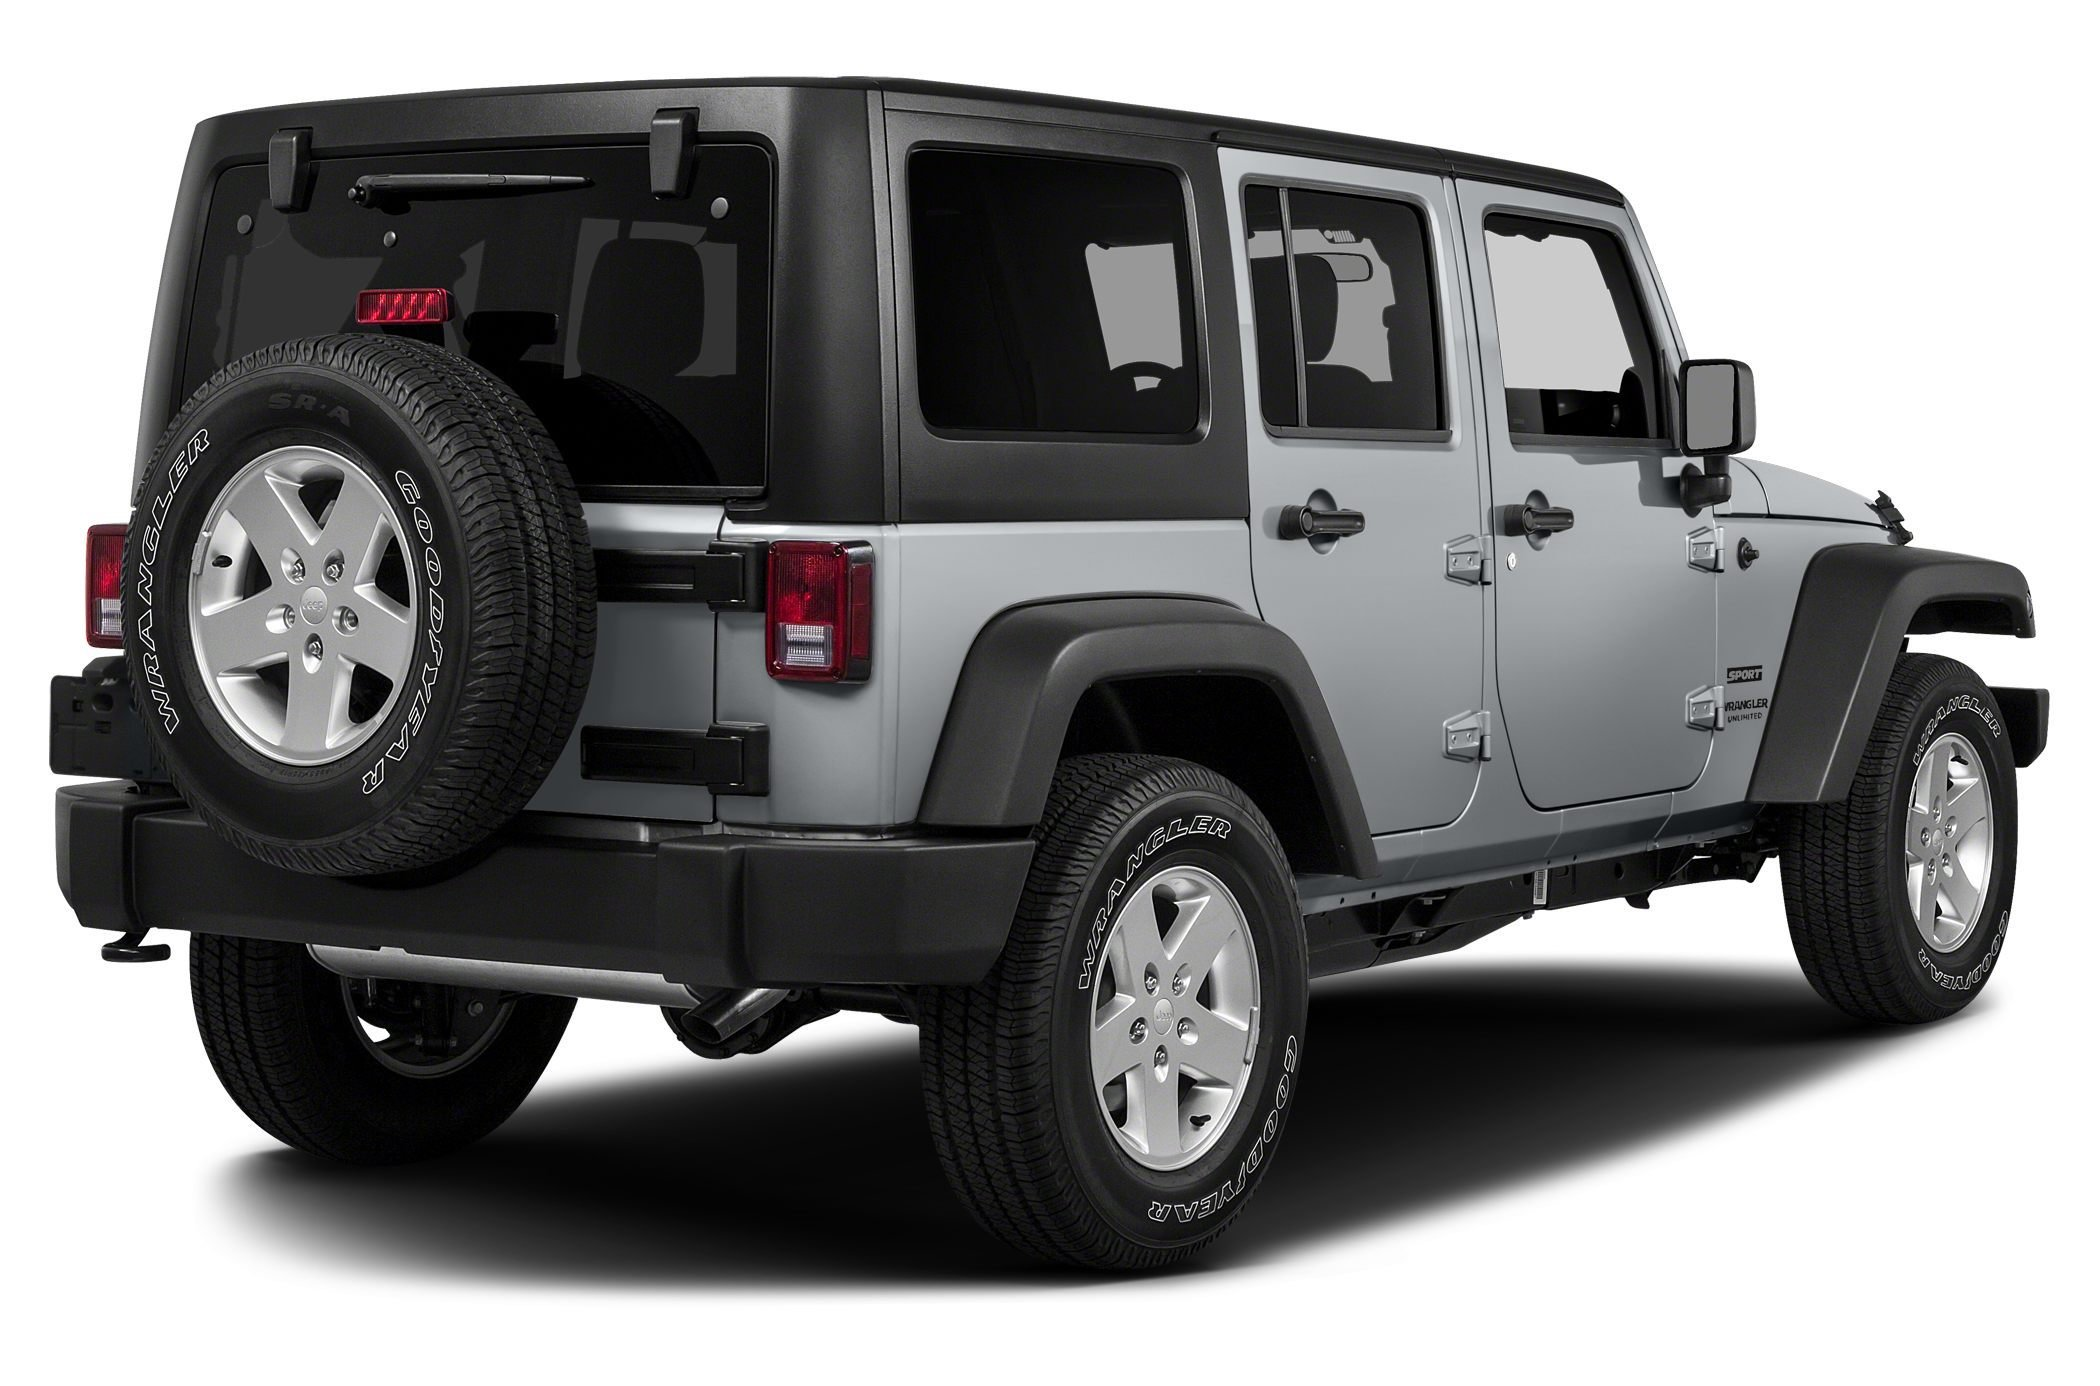 Latest New 2017 Jeep Wrangler Unlimited Price Photos Reviews Safety Ratings Features Free Download